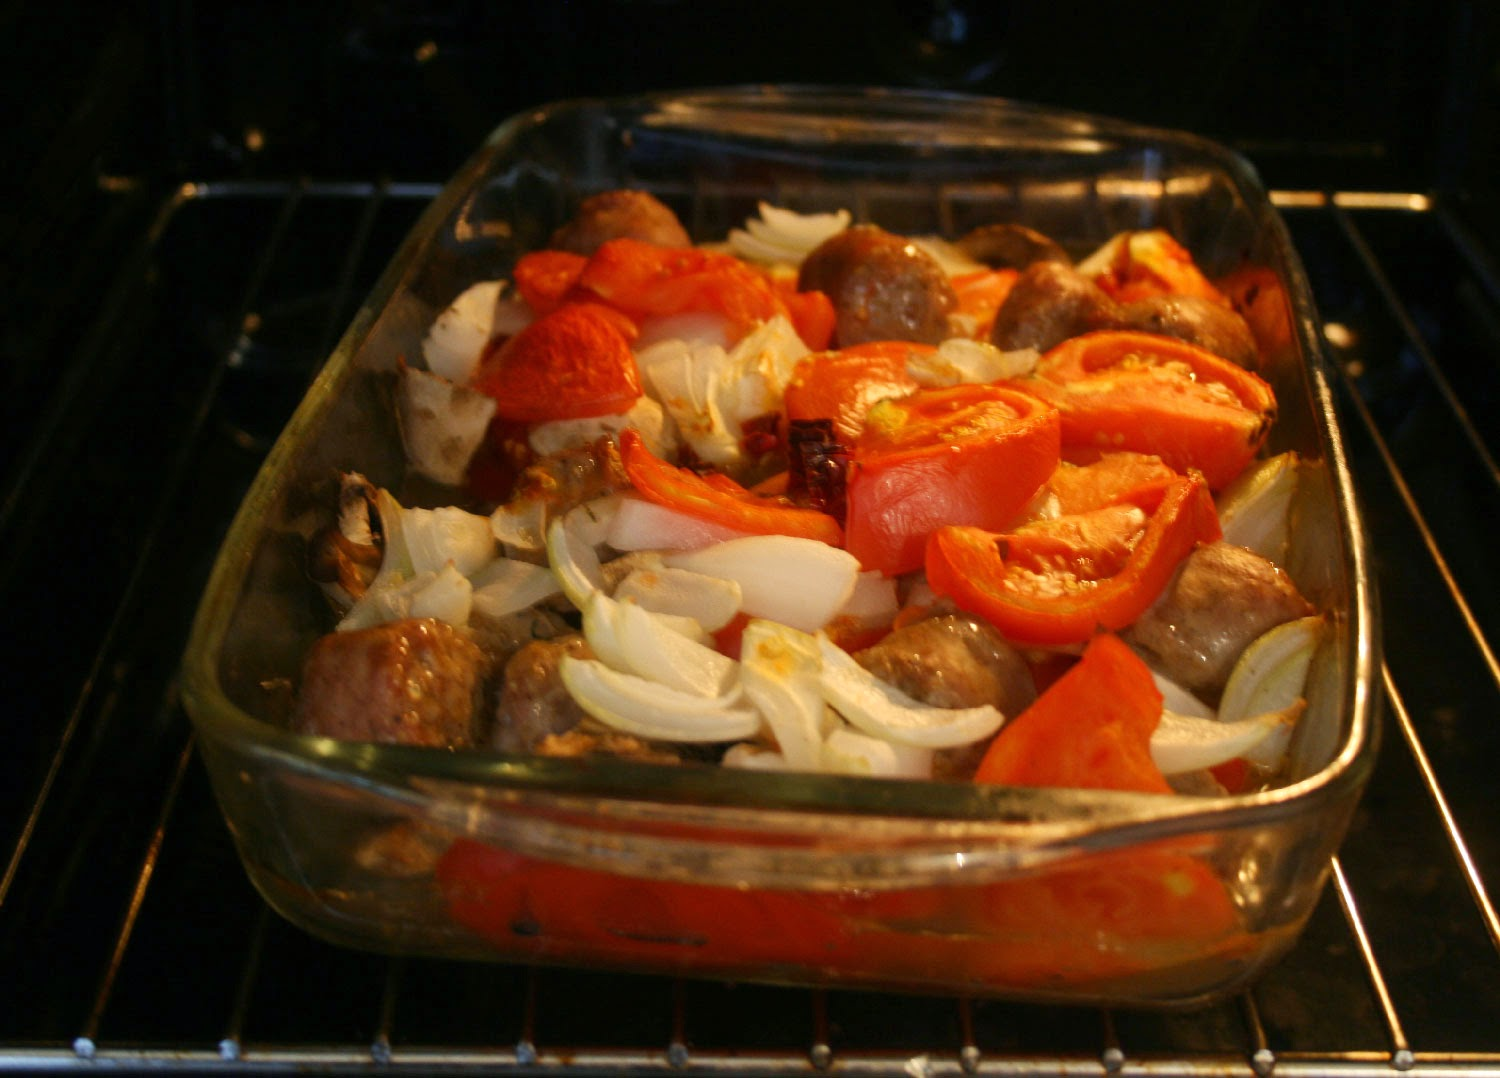 Dinner in the oven